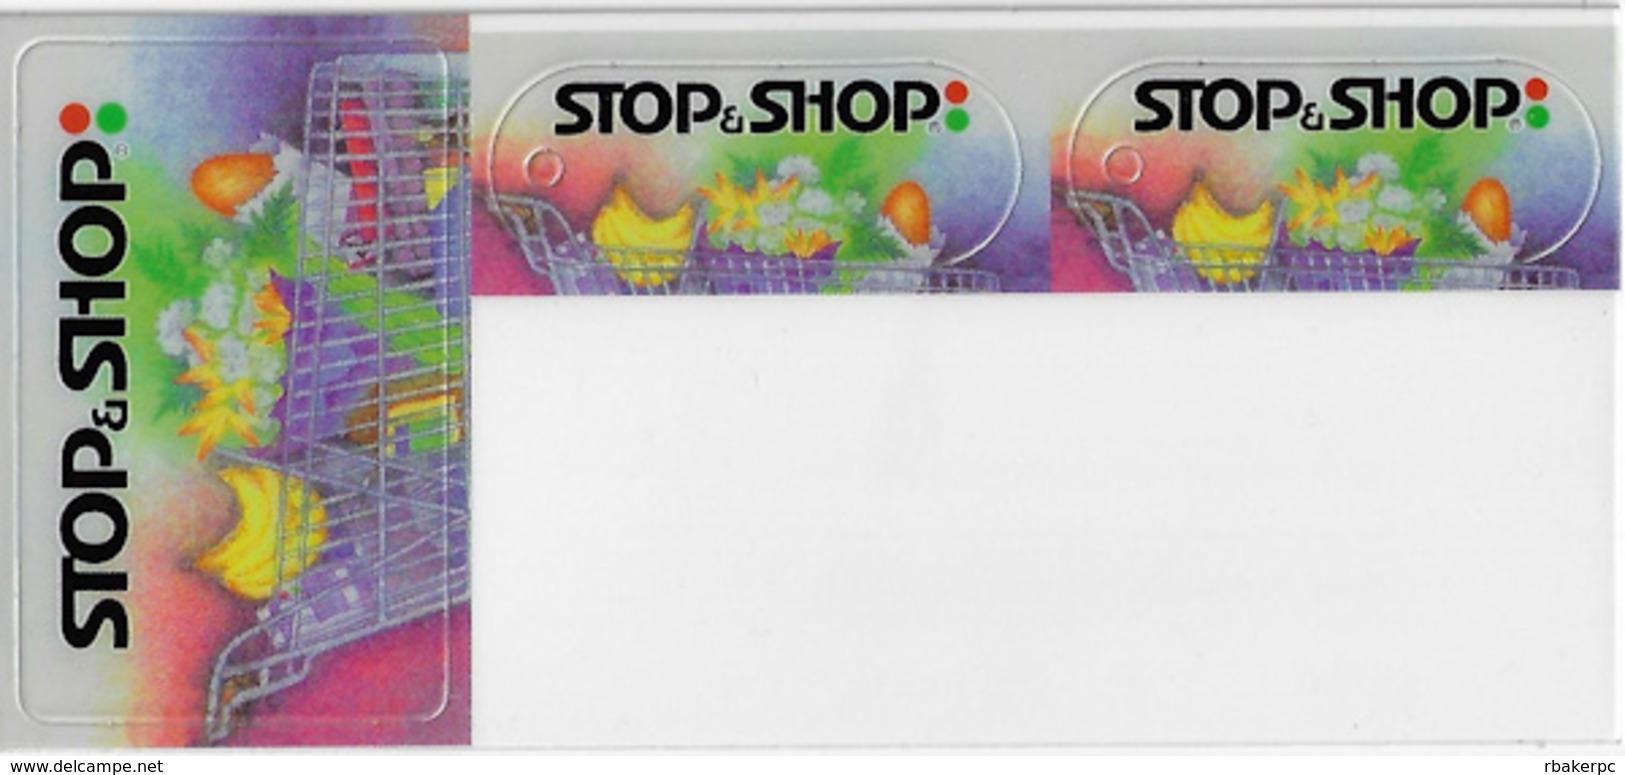 Stop & Shop Customer Loyalty 3 Card Set - 8x3.5 Inches - 1 Full Size Card + 2 Keyring Cards - Other Collections